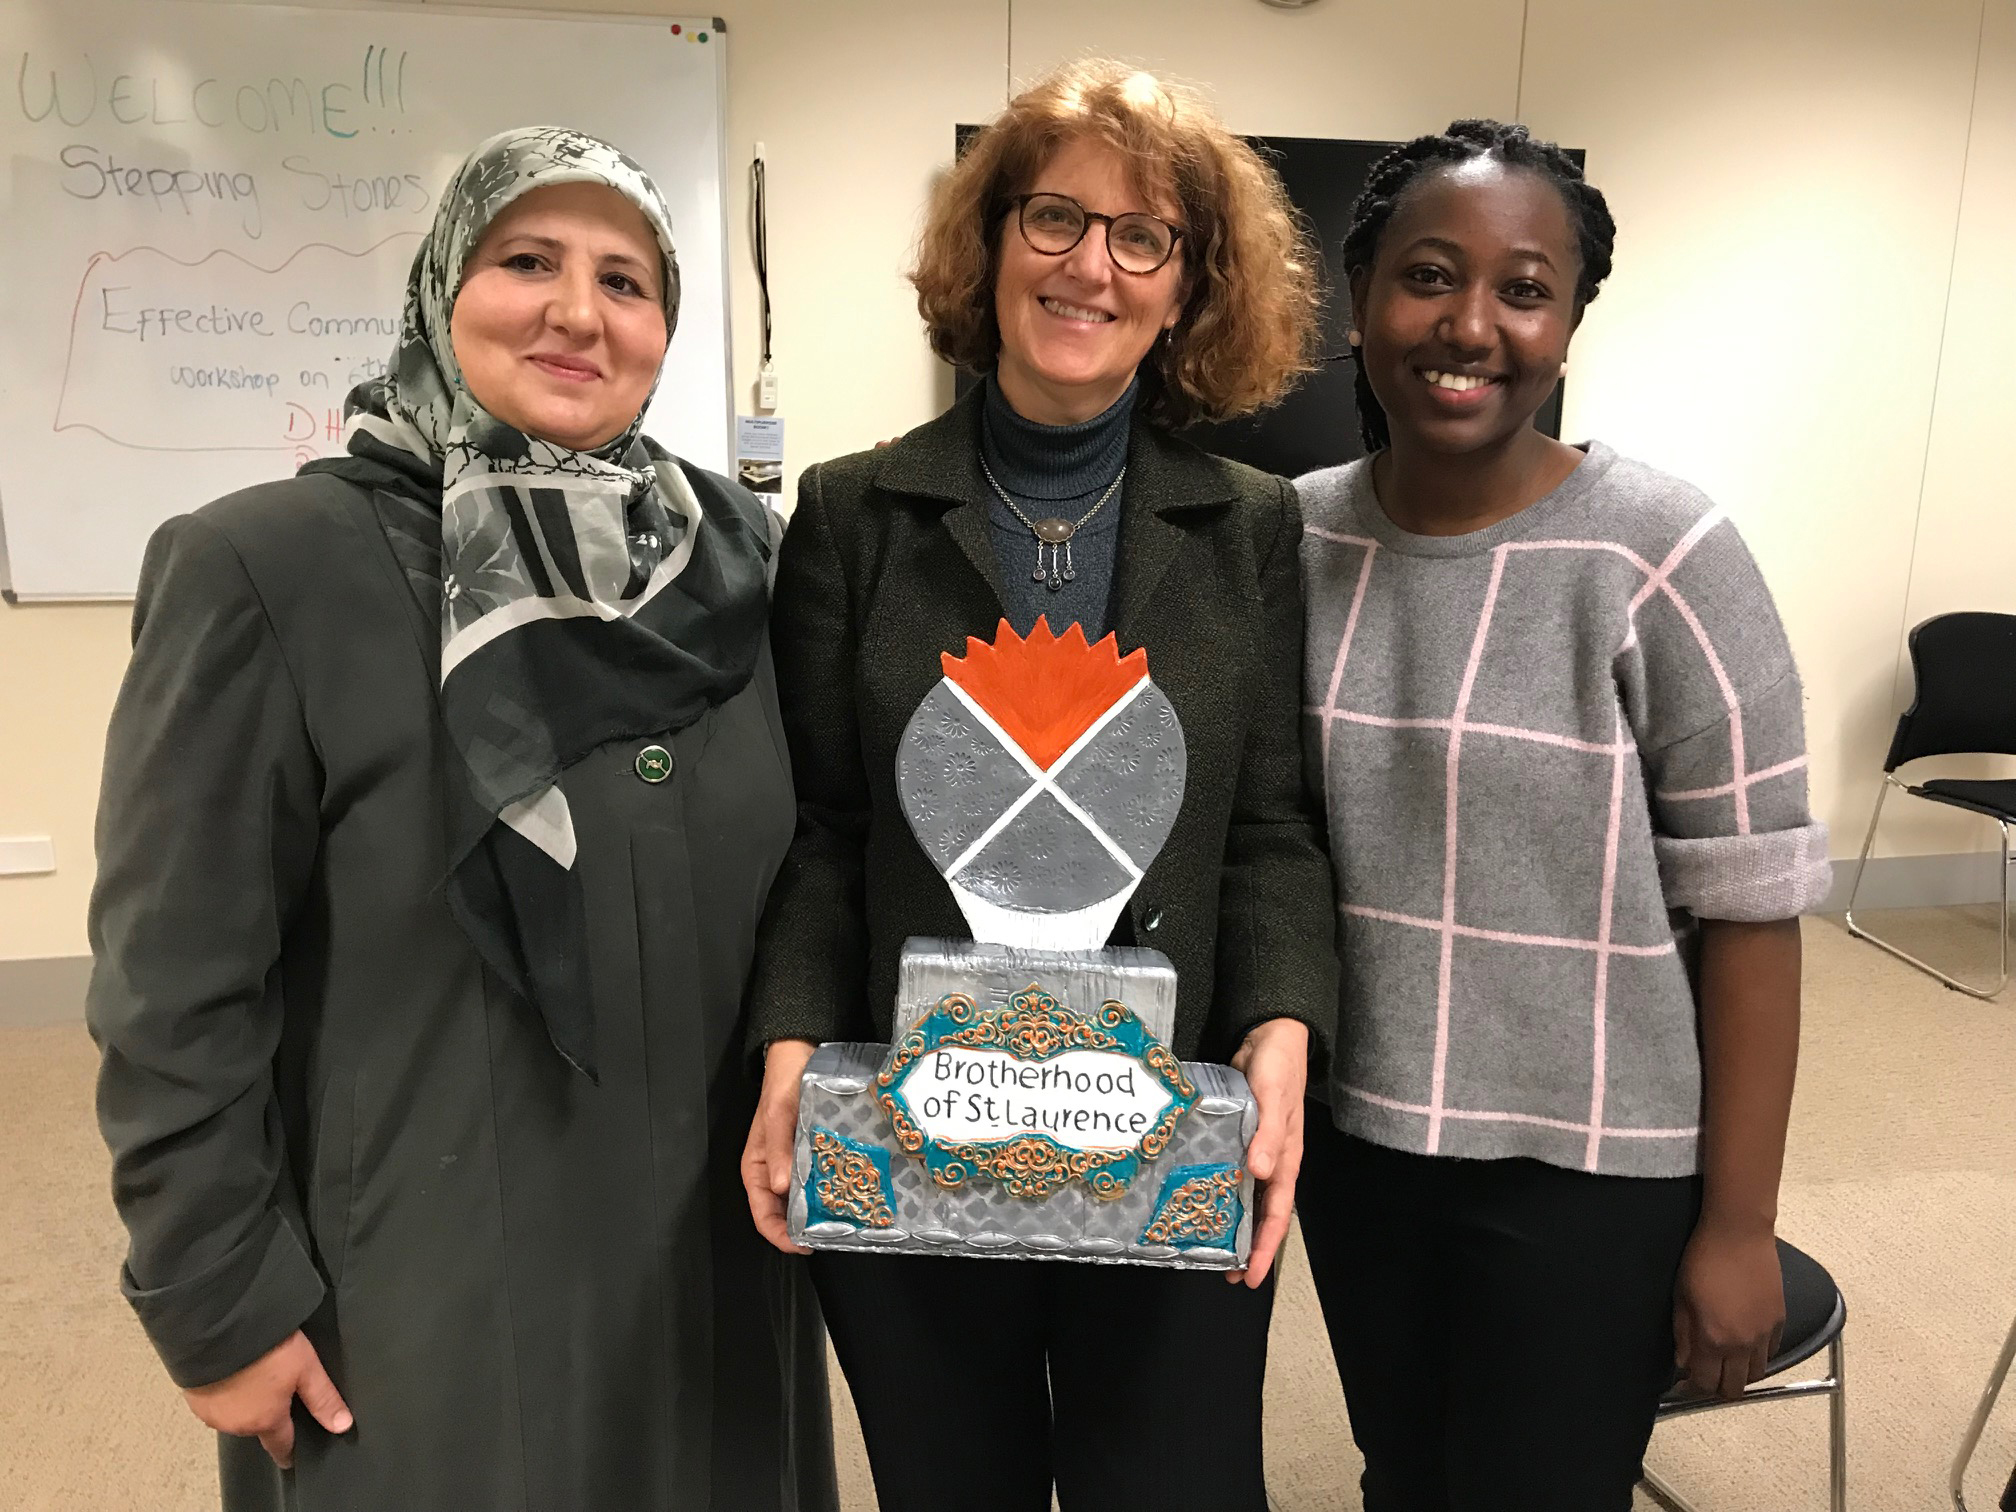 Linet and Meredith from our Multicultural Communities team with Ahlam who started her own business, Cookies by Dreams, through our Stepping Stones to Small business program, and made this incredible, edible trophy for the team.